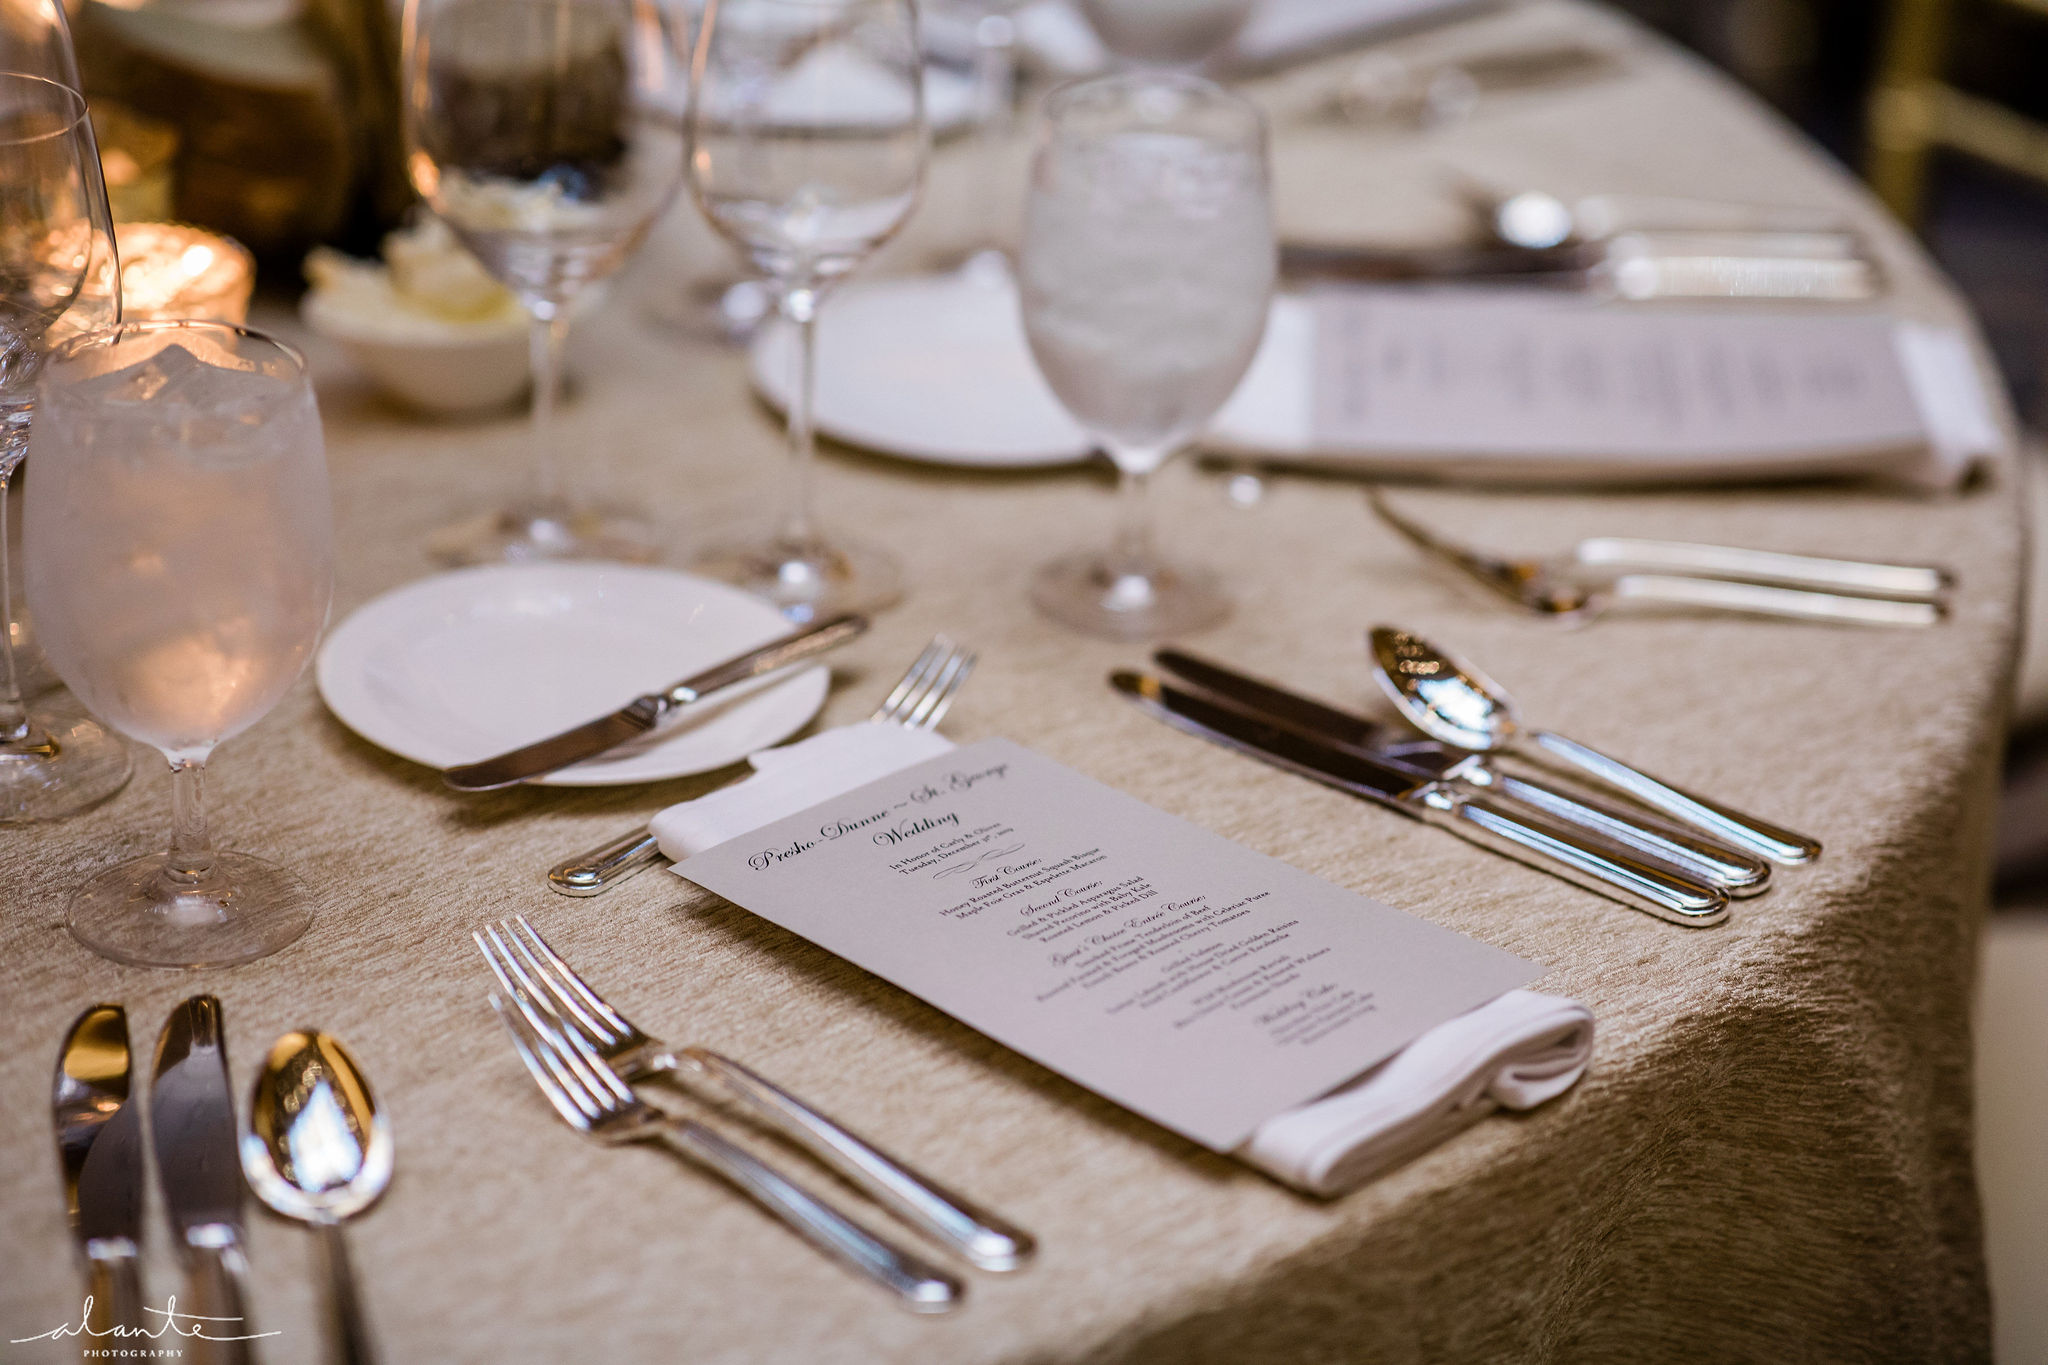 Winter wedding place setting on gold textured linens with a menu card on each napkin.